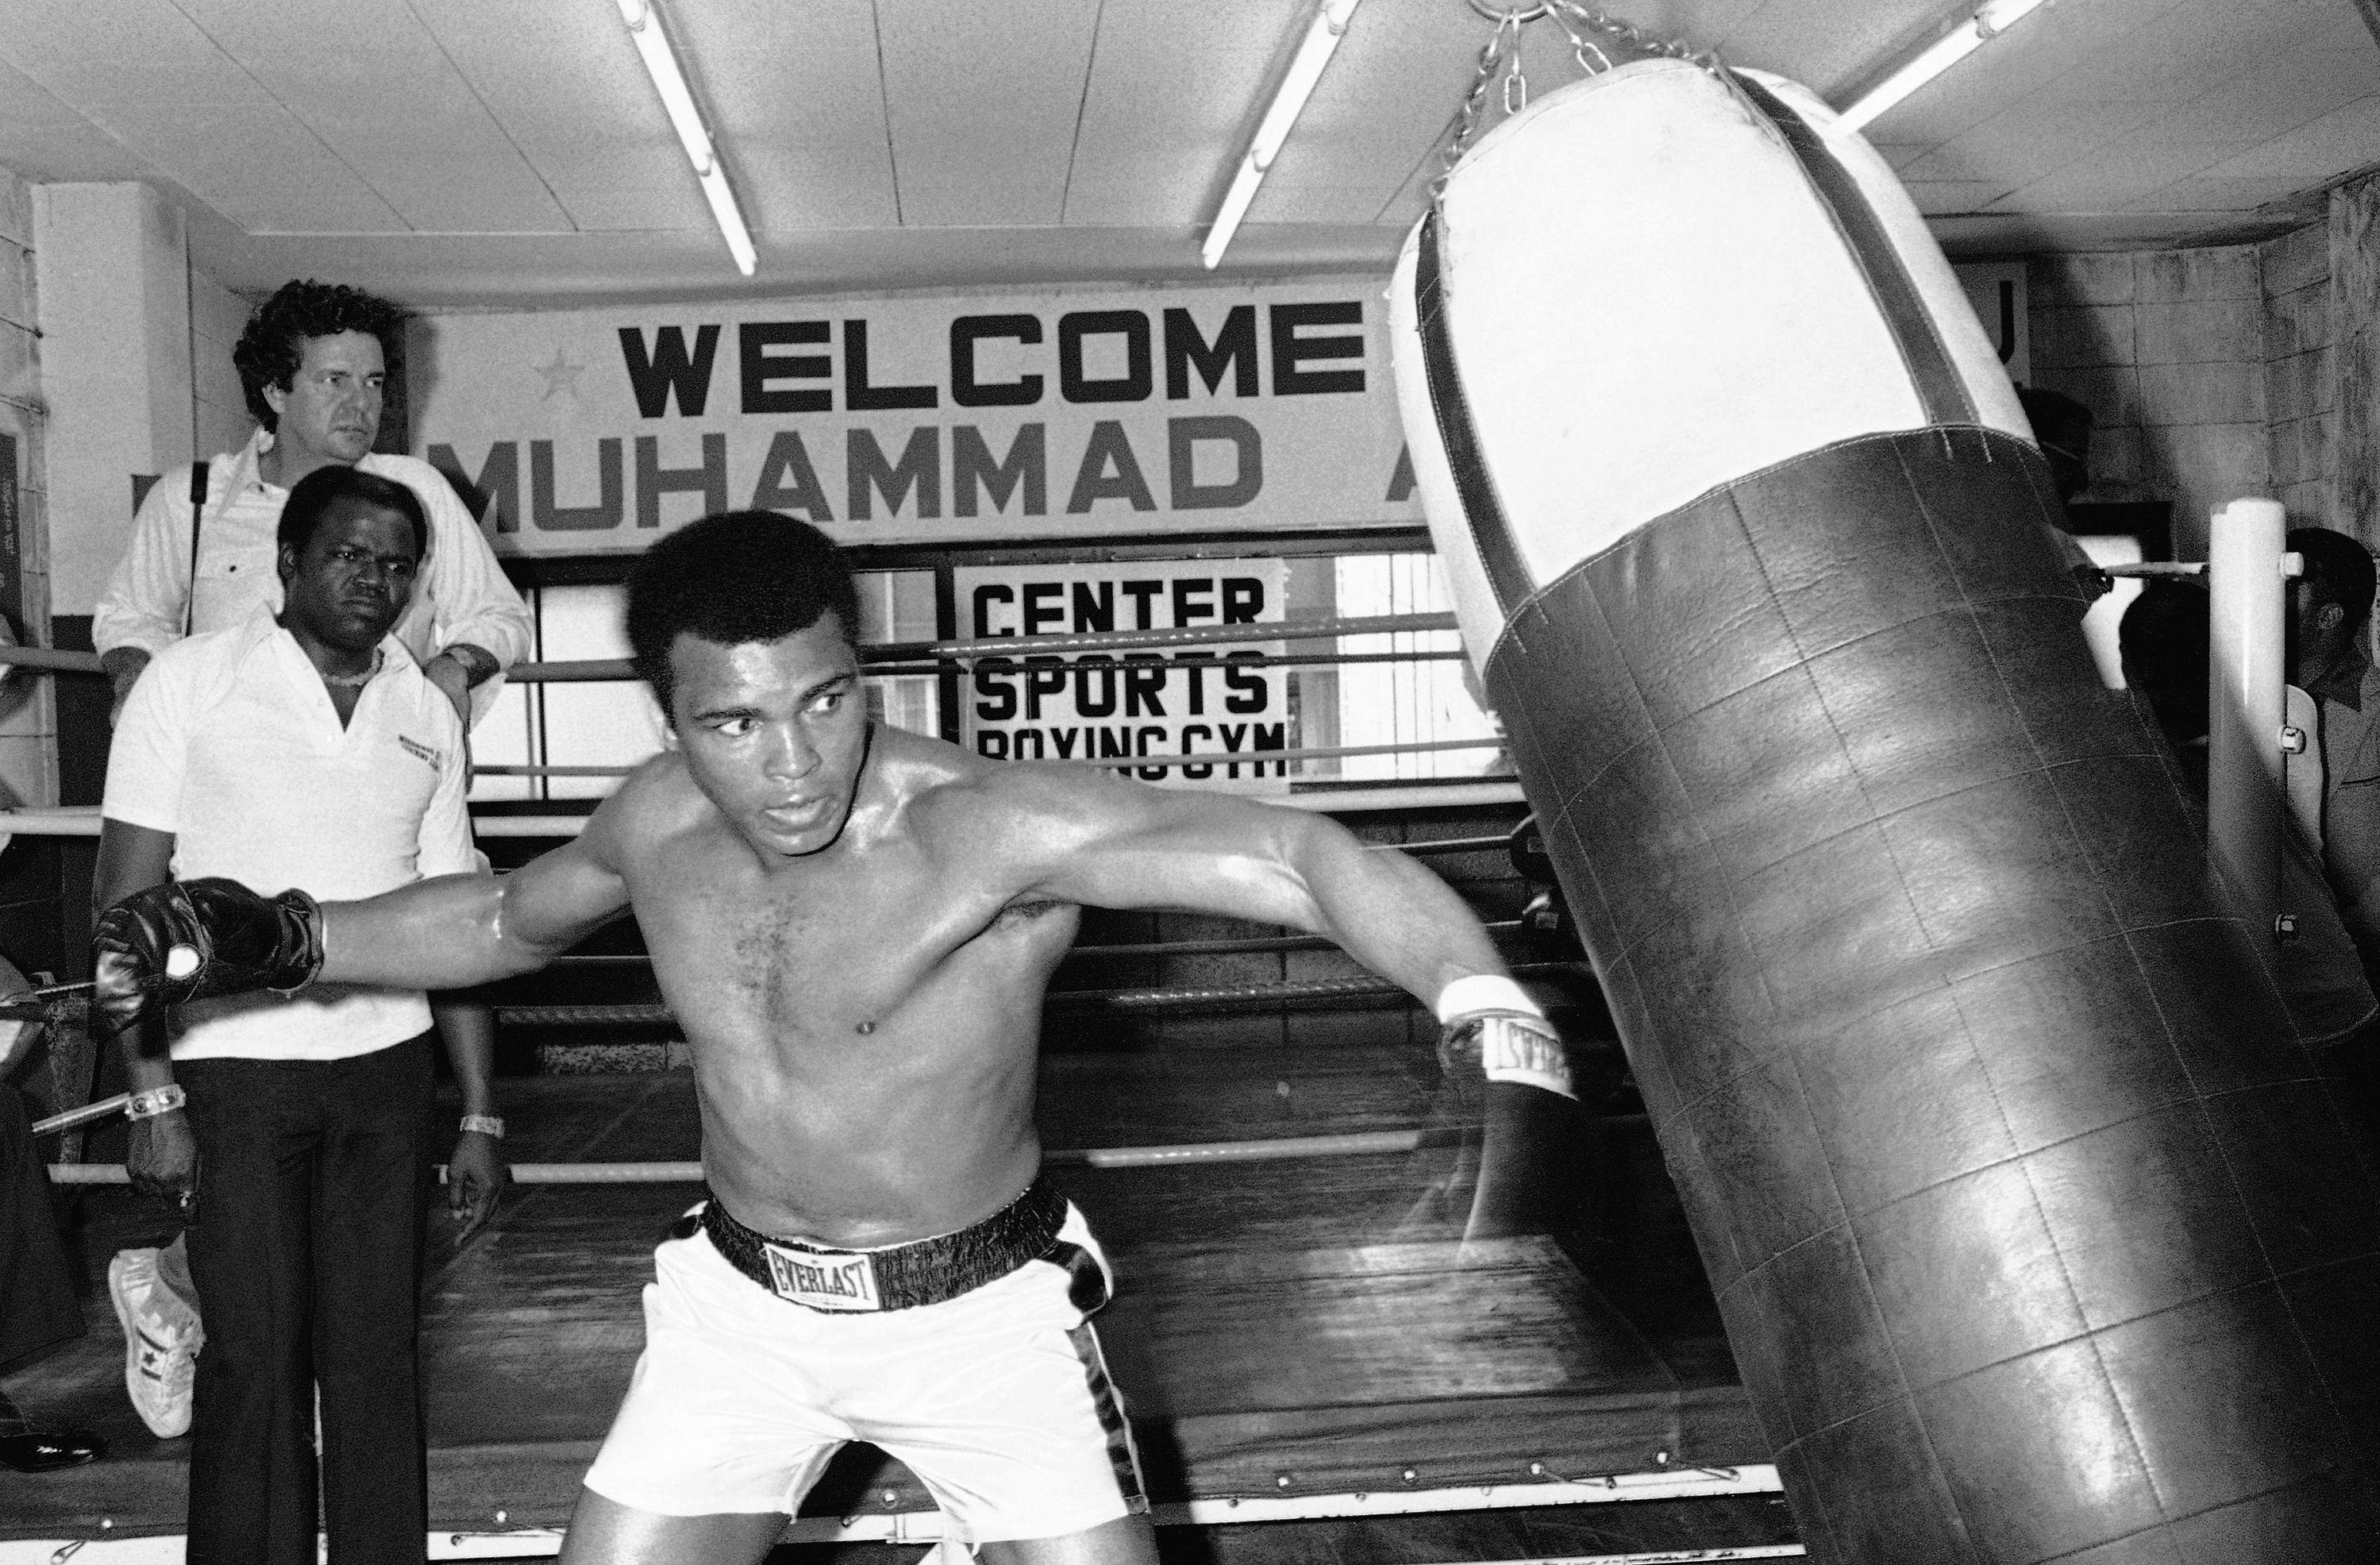 In this Wednesday, June 23, 1976, file photo, Muhammad Ali throws a left punch at a sandbag during workout at a gym in Tokyo. Later in the week, the world heavyweight boxing champion met Japanese pro wrestler Antonio Inoki in the world's Martial Arts Championship. NICK UT/THE ASSOCIATED PRESS